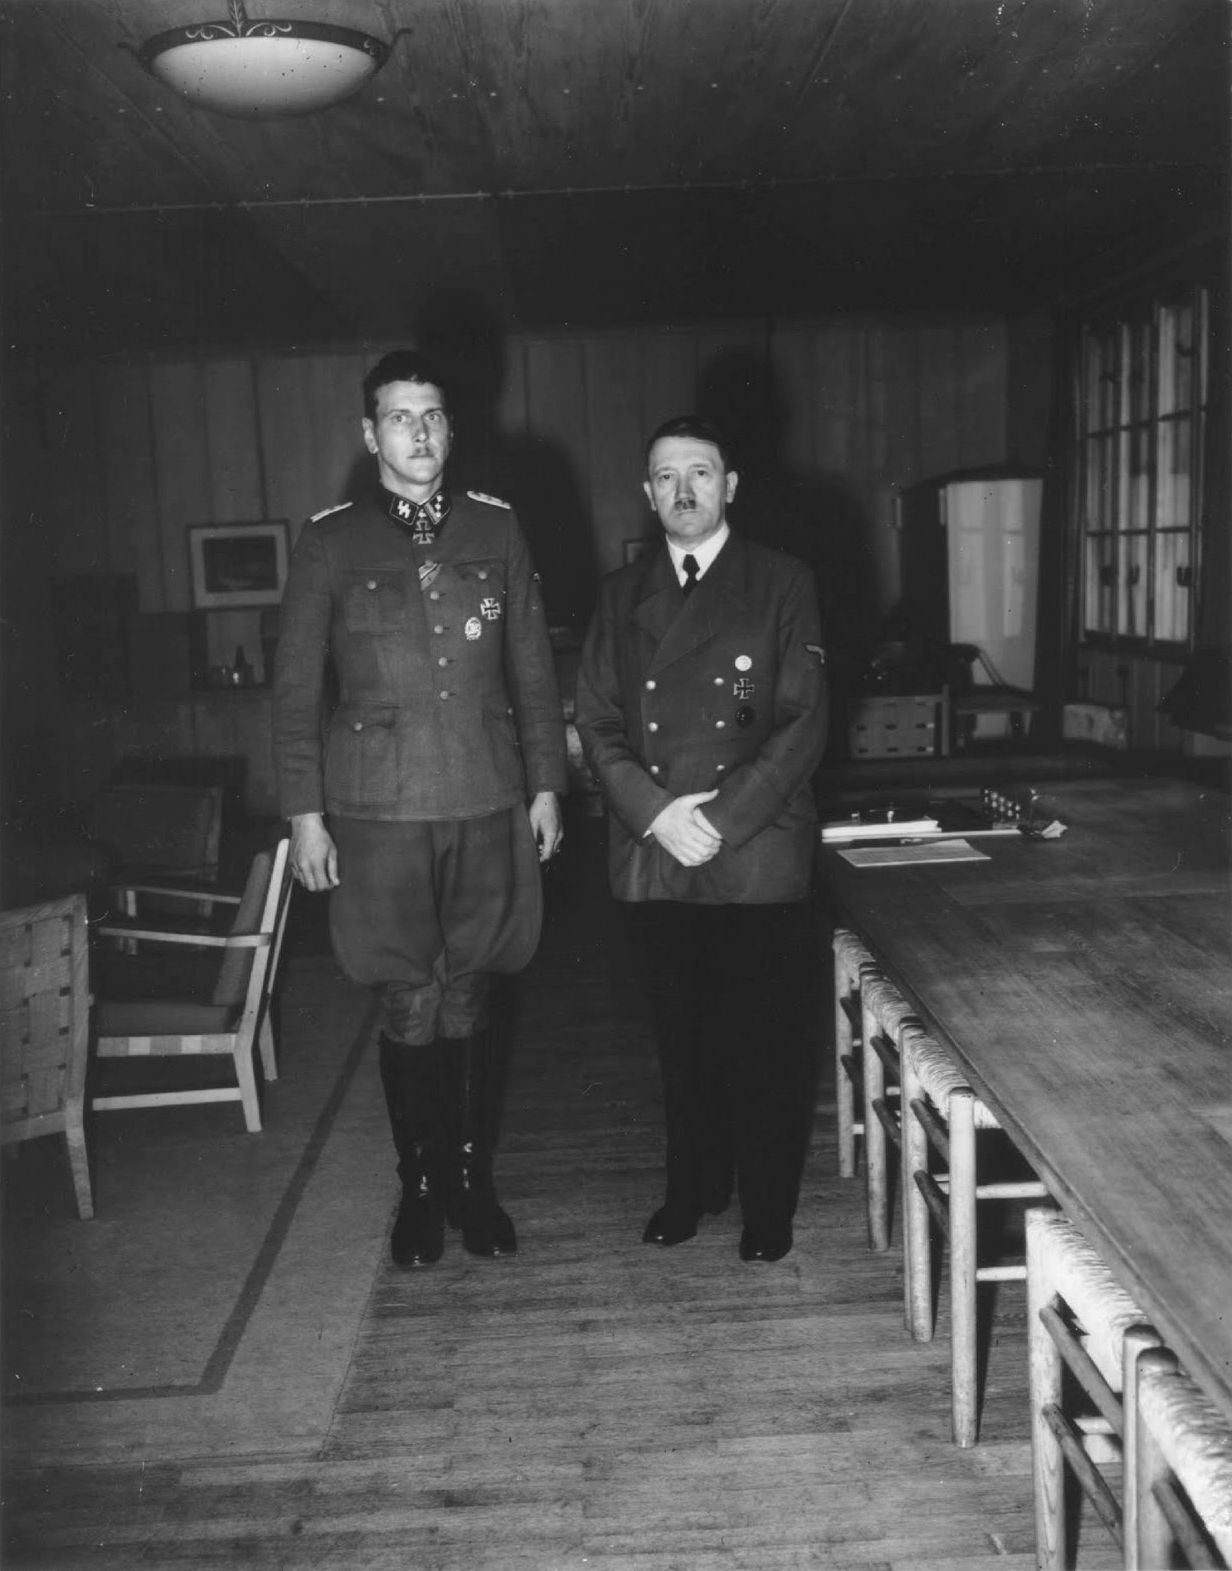 Adolf Hitler Poses With Standartenfuhrer Ss Colonel Otto Skorzeny On The Day The Latter Was Decorated With The Knight S Cross 1943 Scorzeny Be Vintage